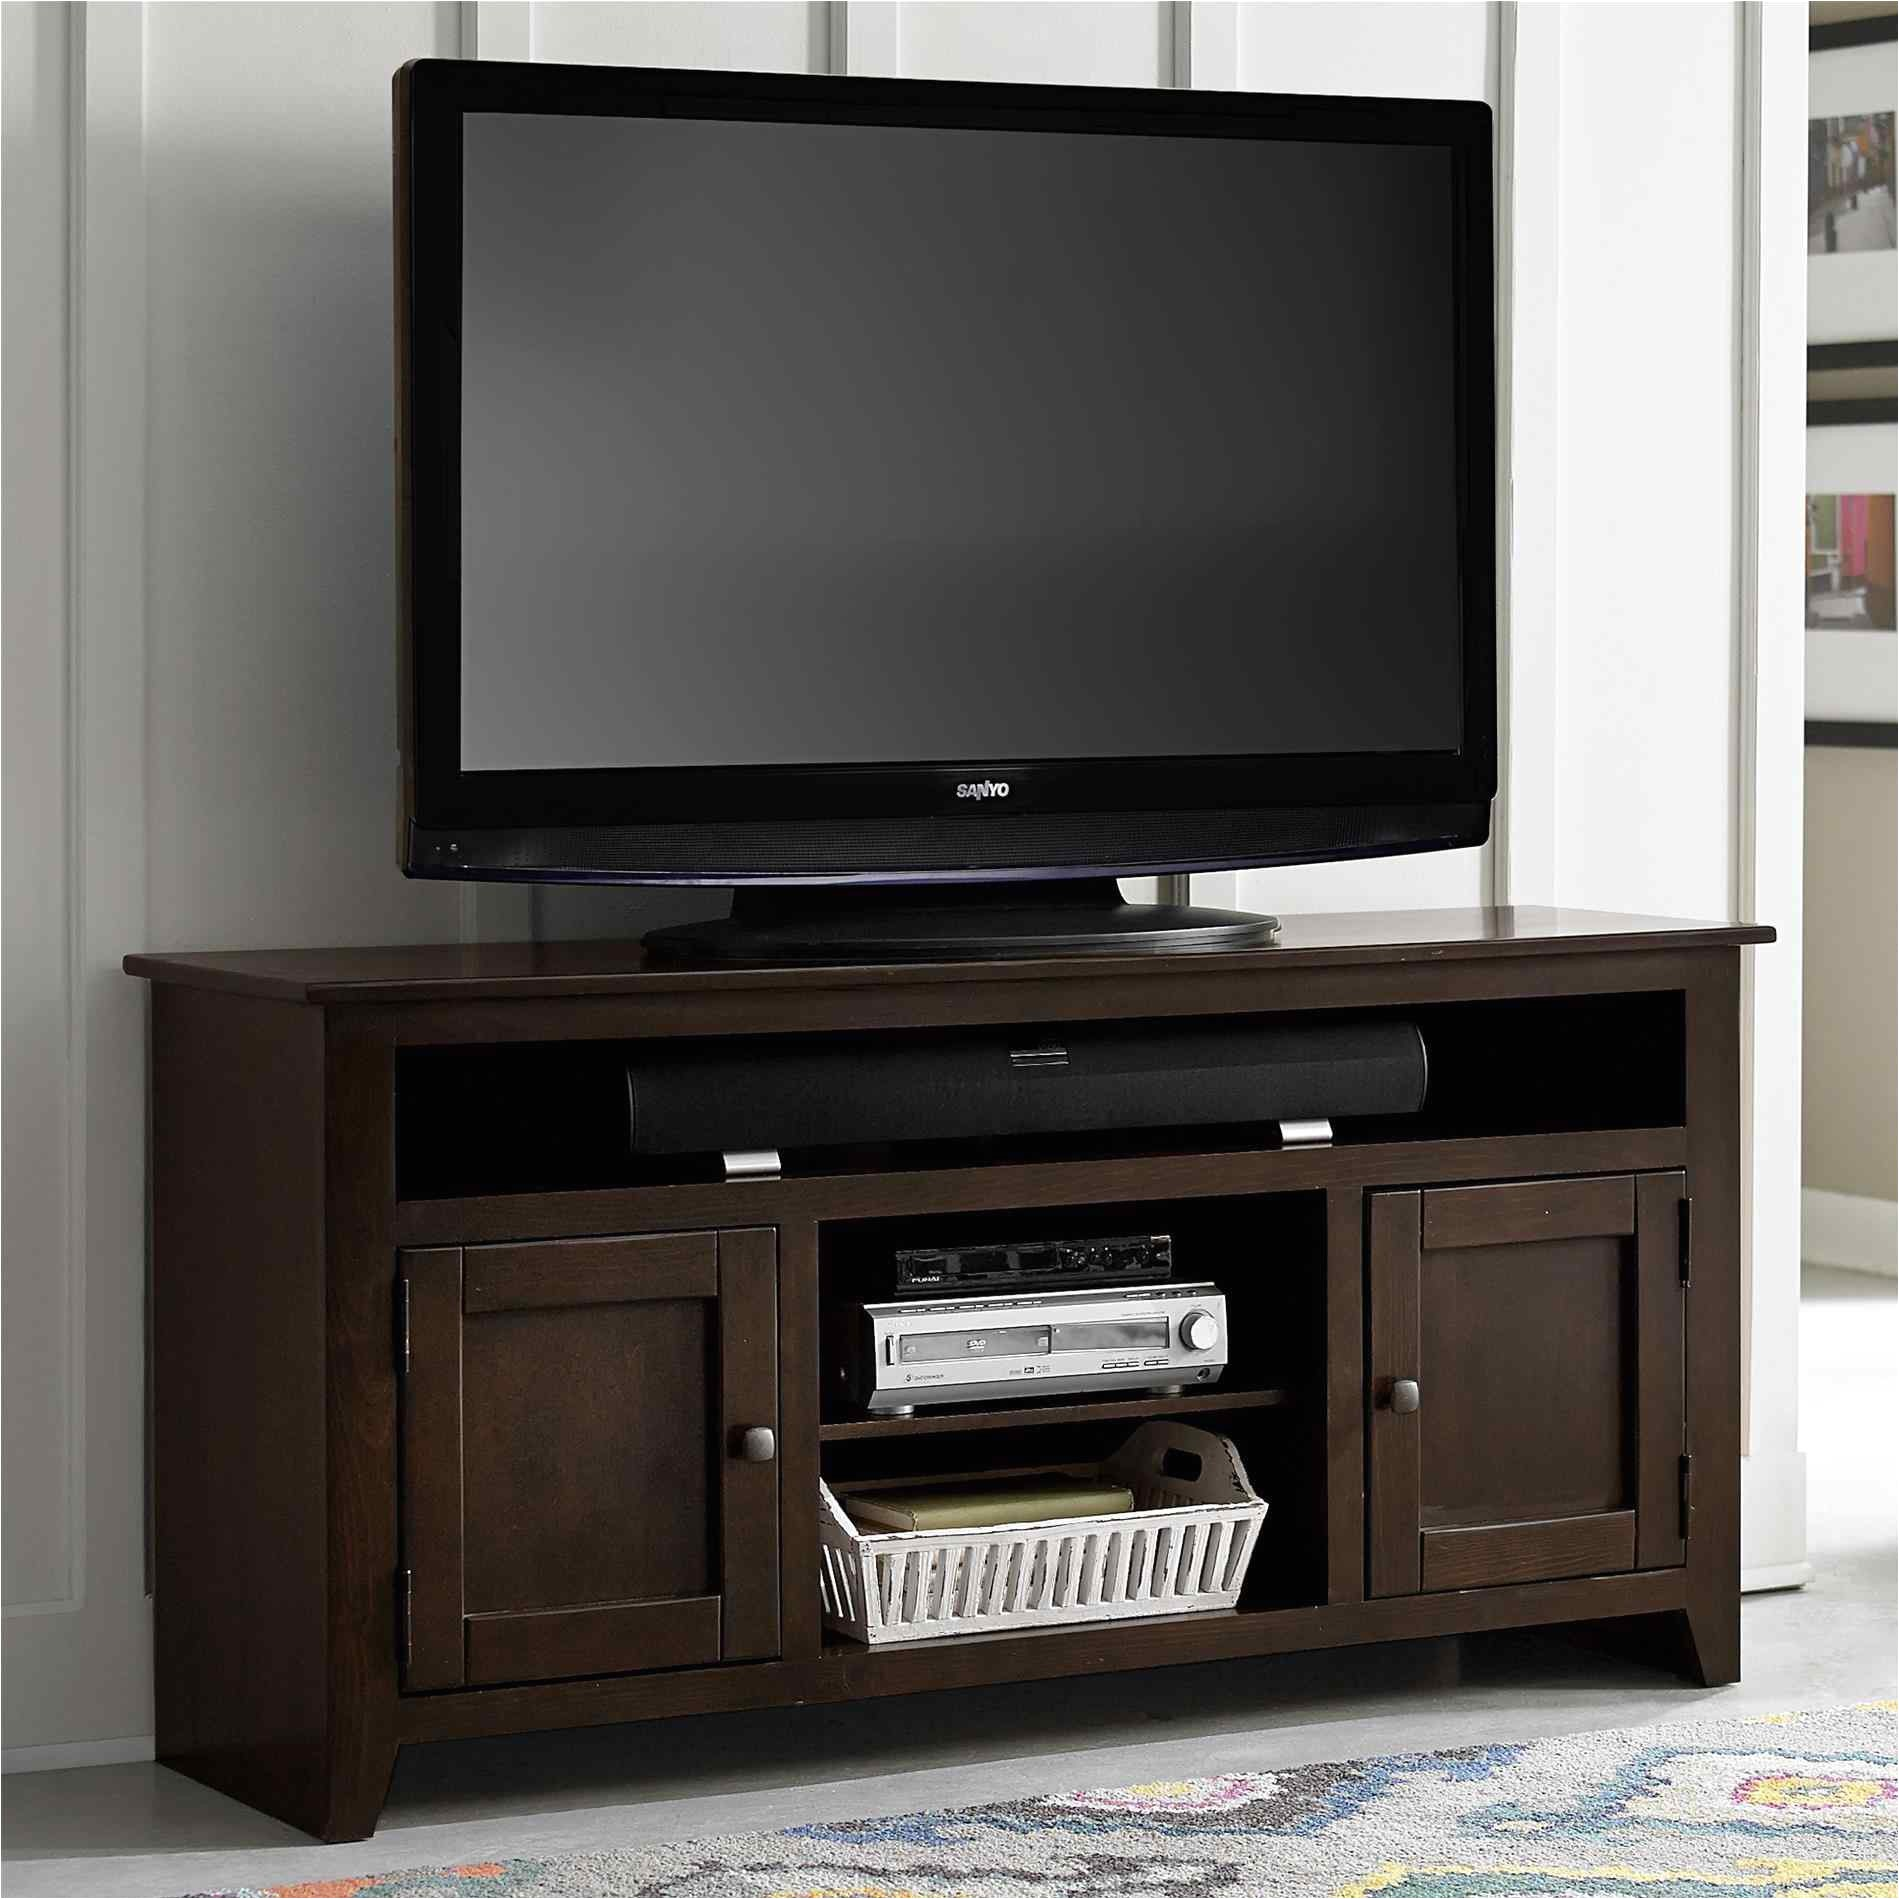 room sets sofas and sectionals american american furniture tv stands furniture warehouse living room sets sofas and sectionals catskills entertainment wall units jpg